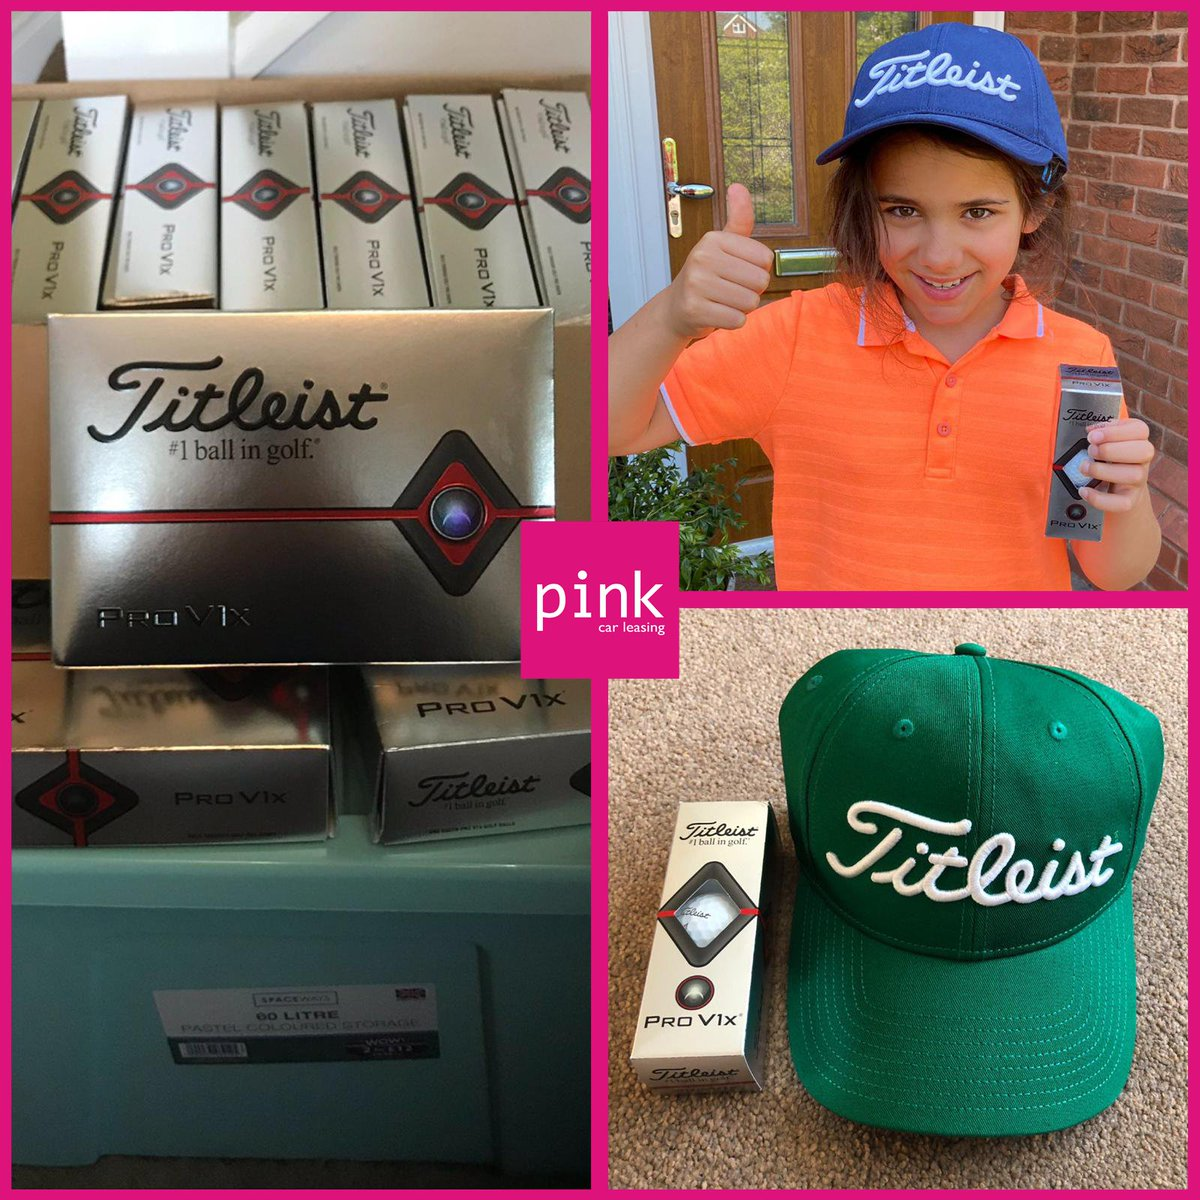 A massive thank you to our recent competition winner and runners-up, @jacksouthgolf, @adam_mates and @waltygb, for these fab pictures of their prizes! 🏅🏌️♂️ If you would like to win a Titleist Tour Cap, enter our Spot the Difference competition here 👉 bit.ly/2BhQUvn